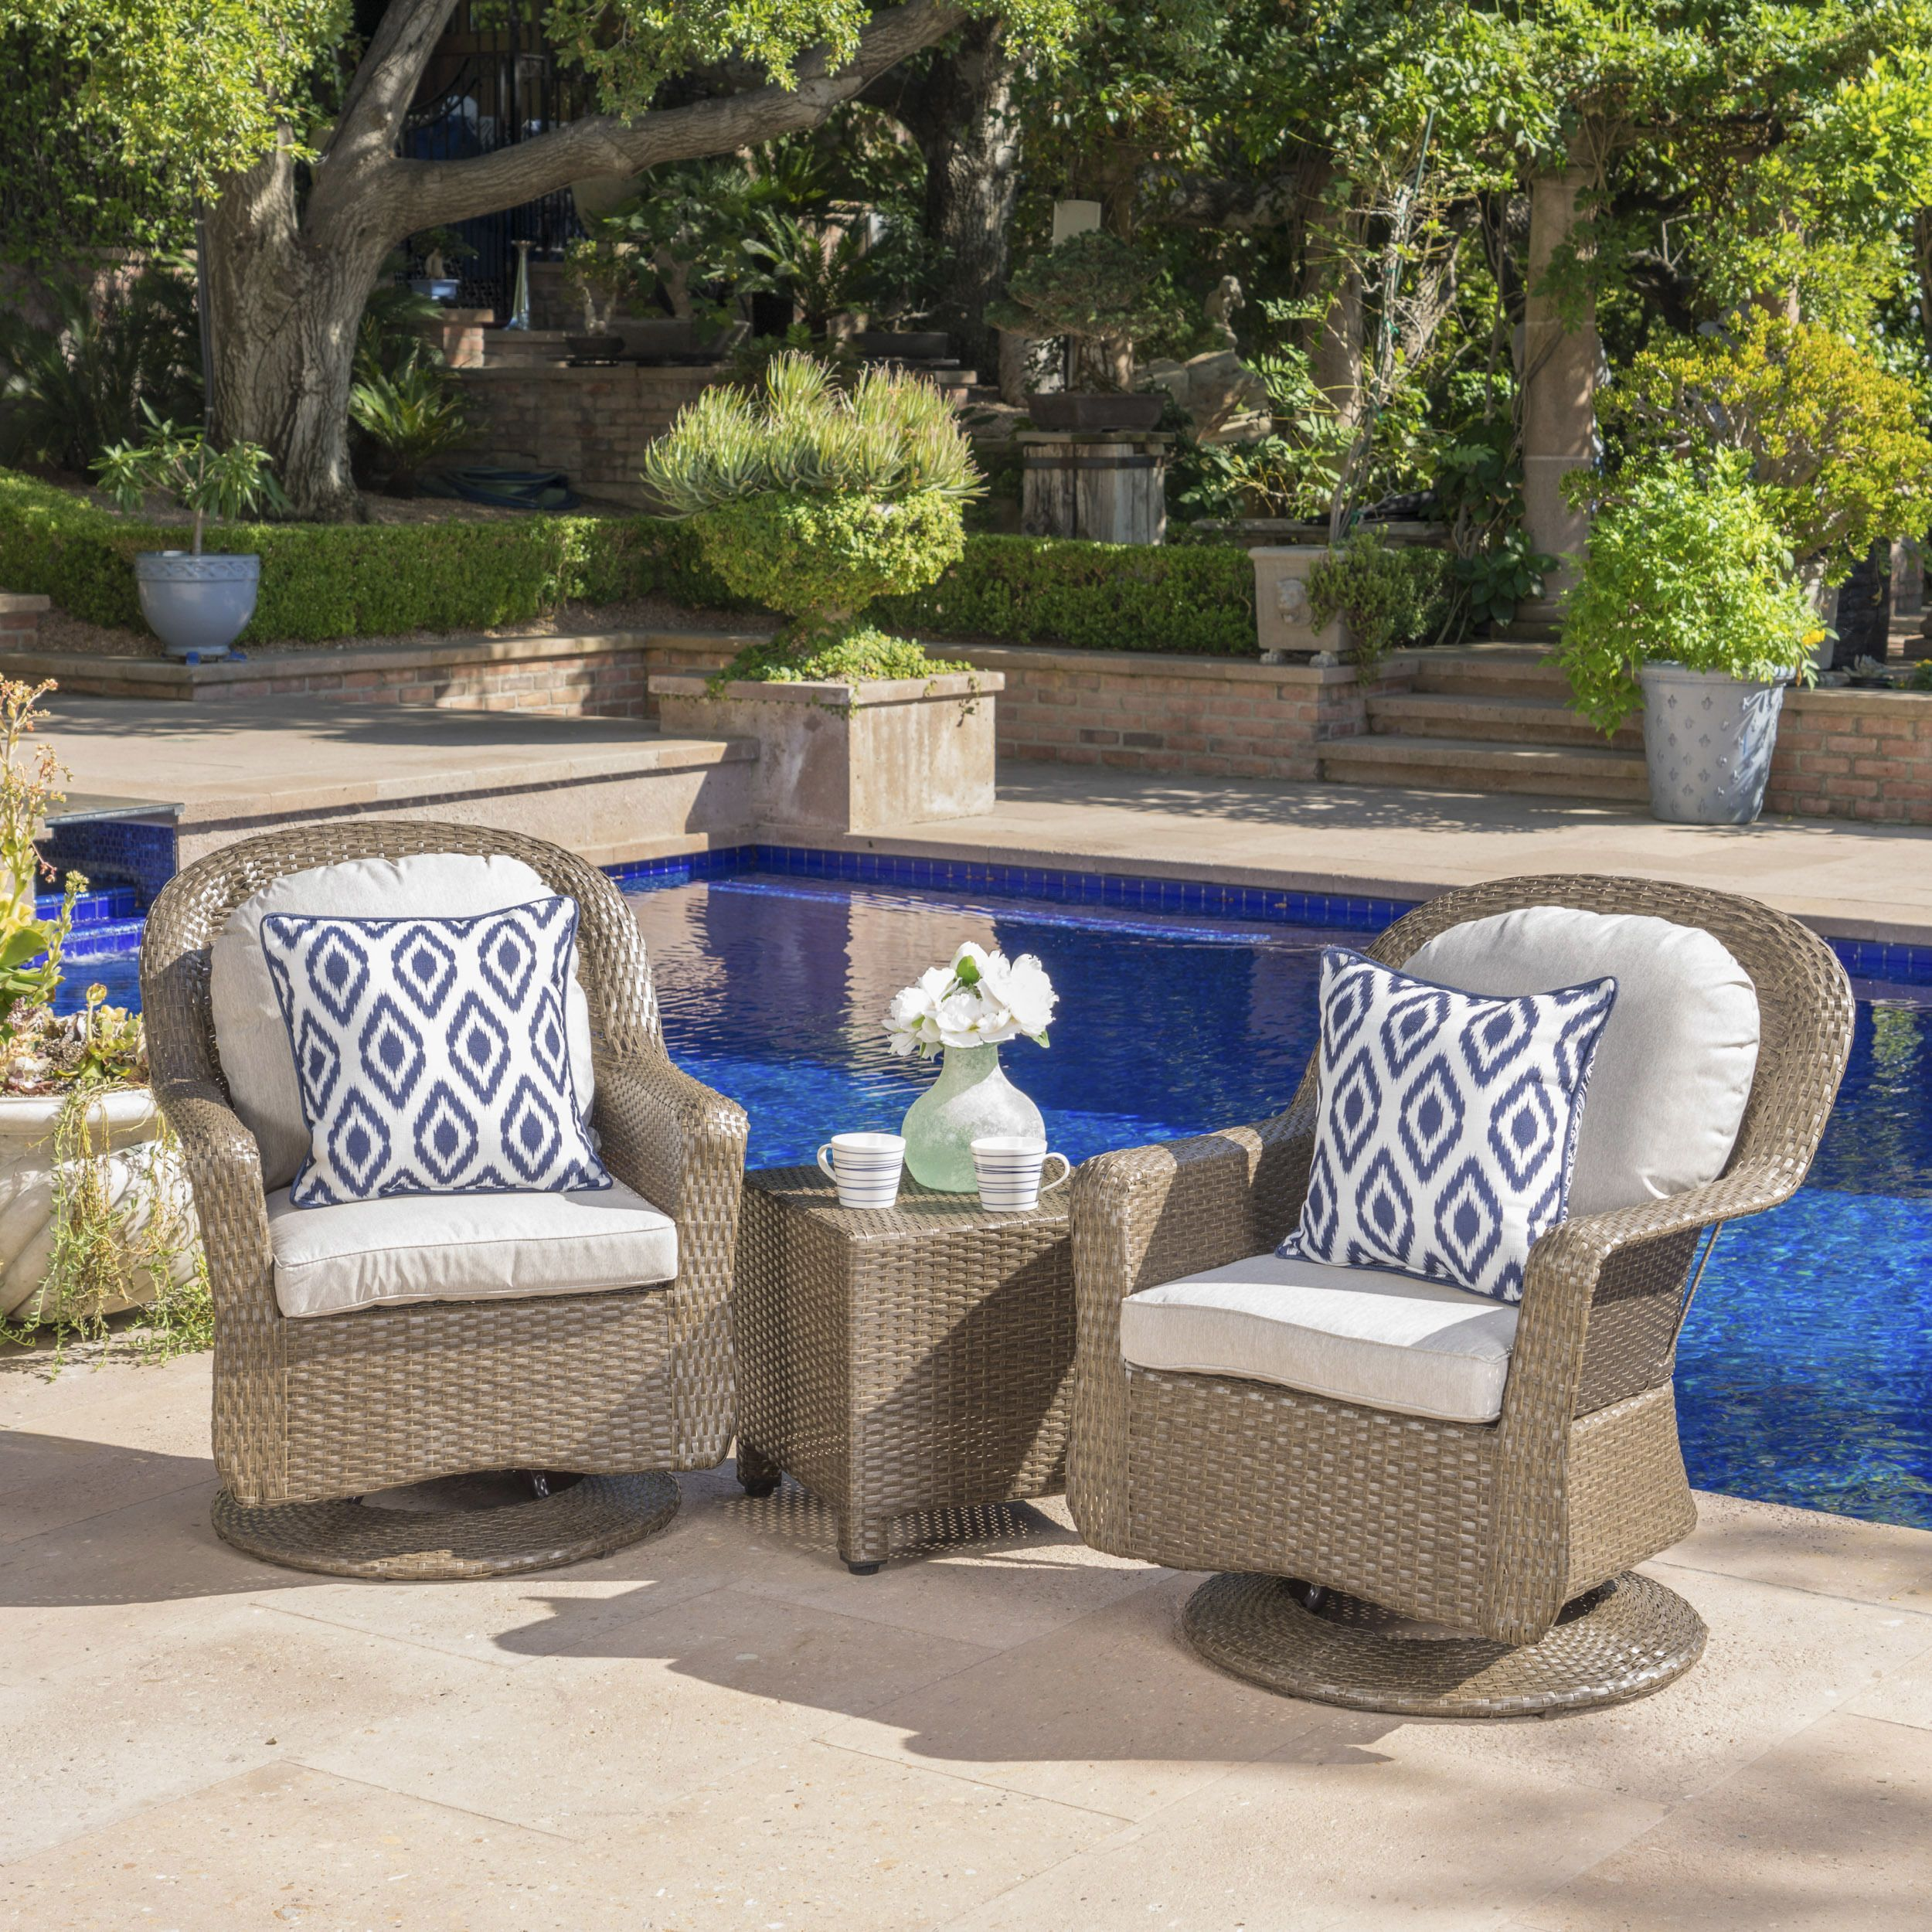 Buy Outdoor Sofas Chairs Sectionals Online At Overstock Our